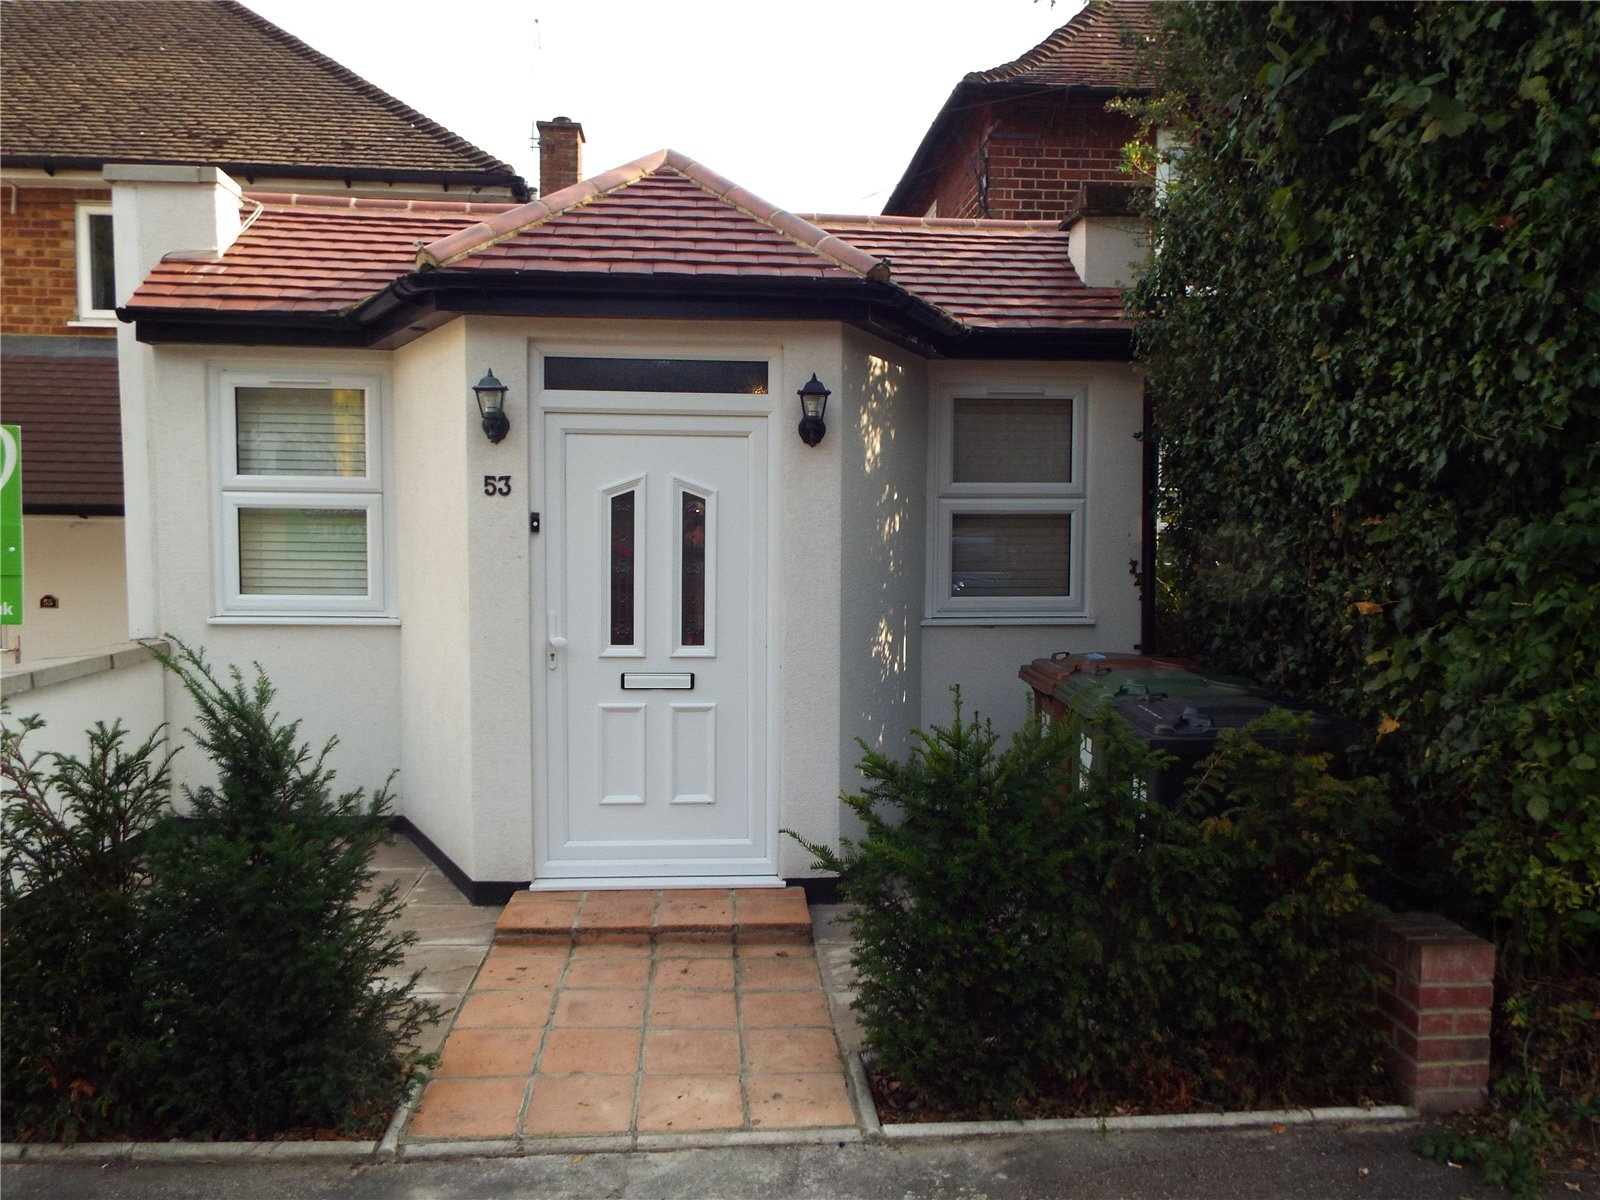 1 bed house to rent in Potters Bar, EN6 1EY 6